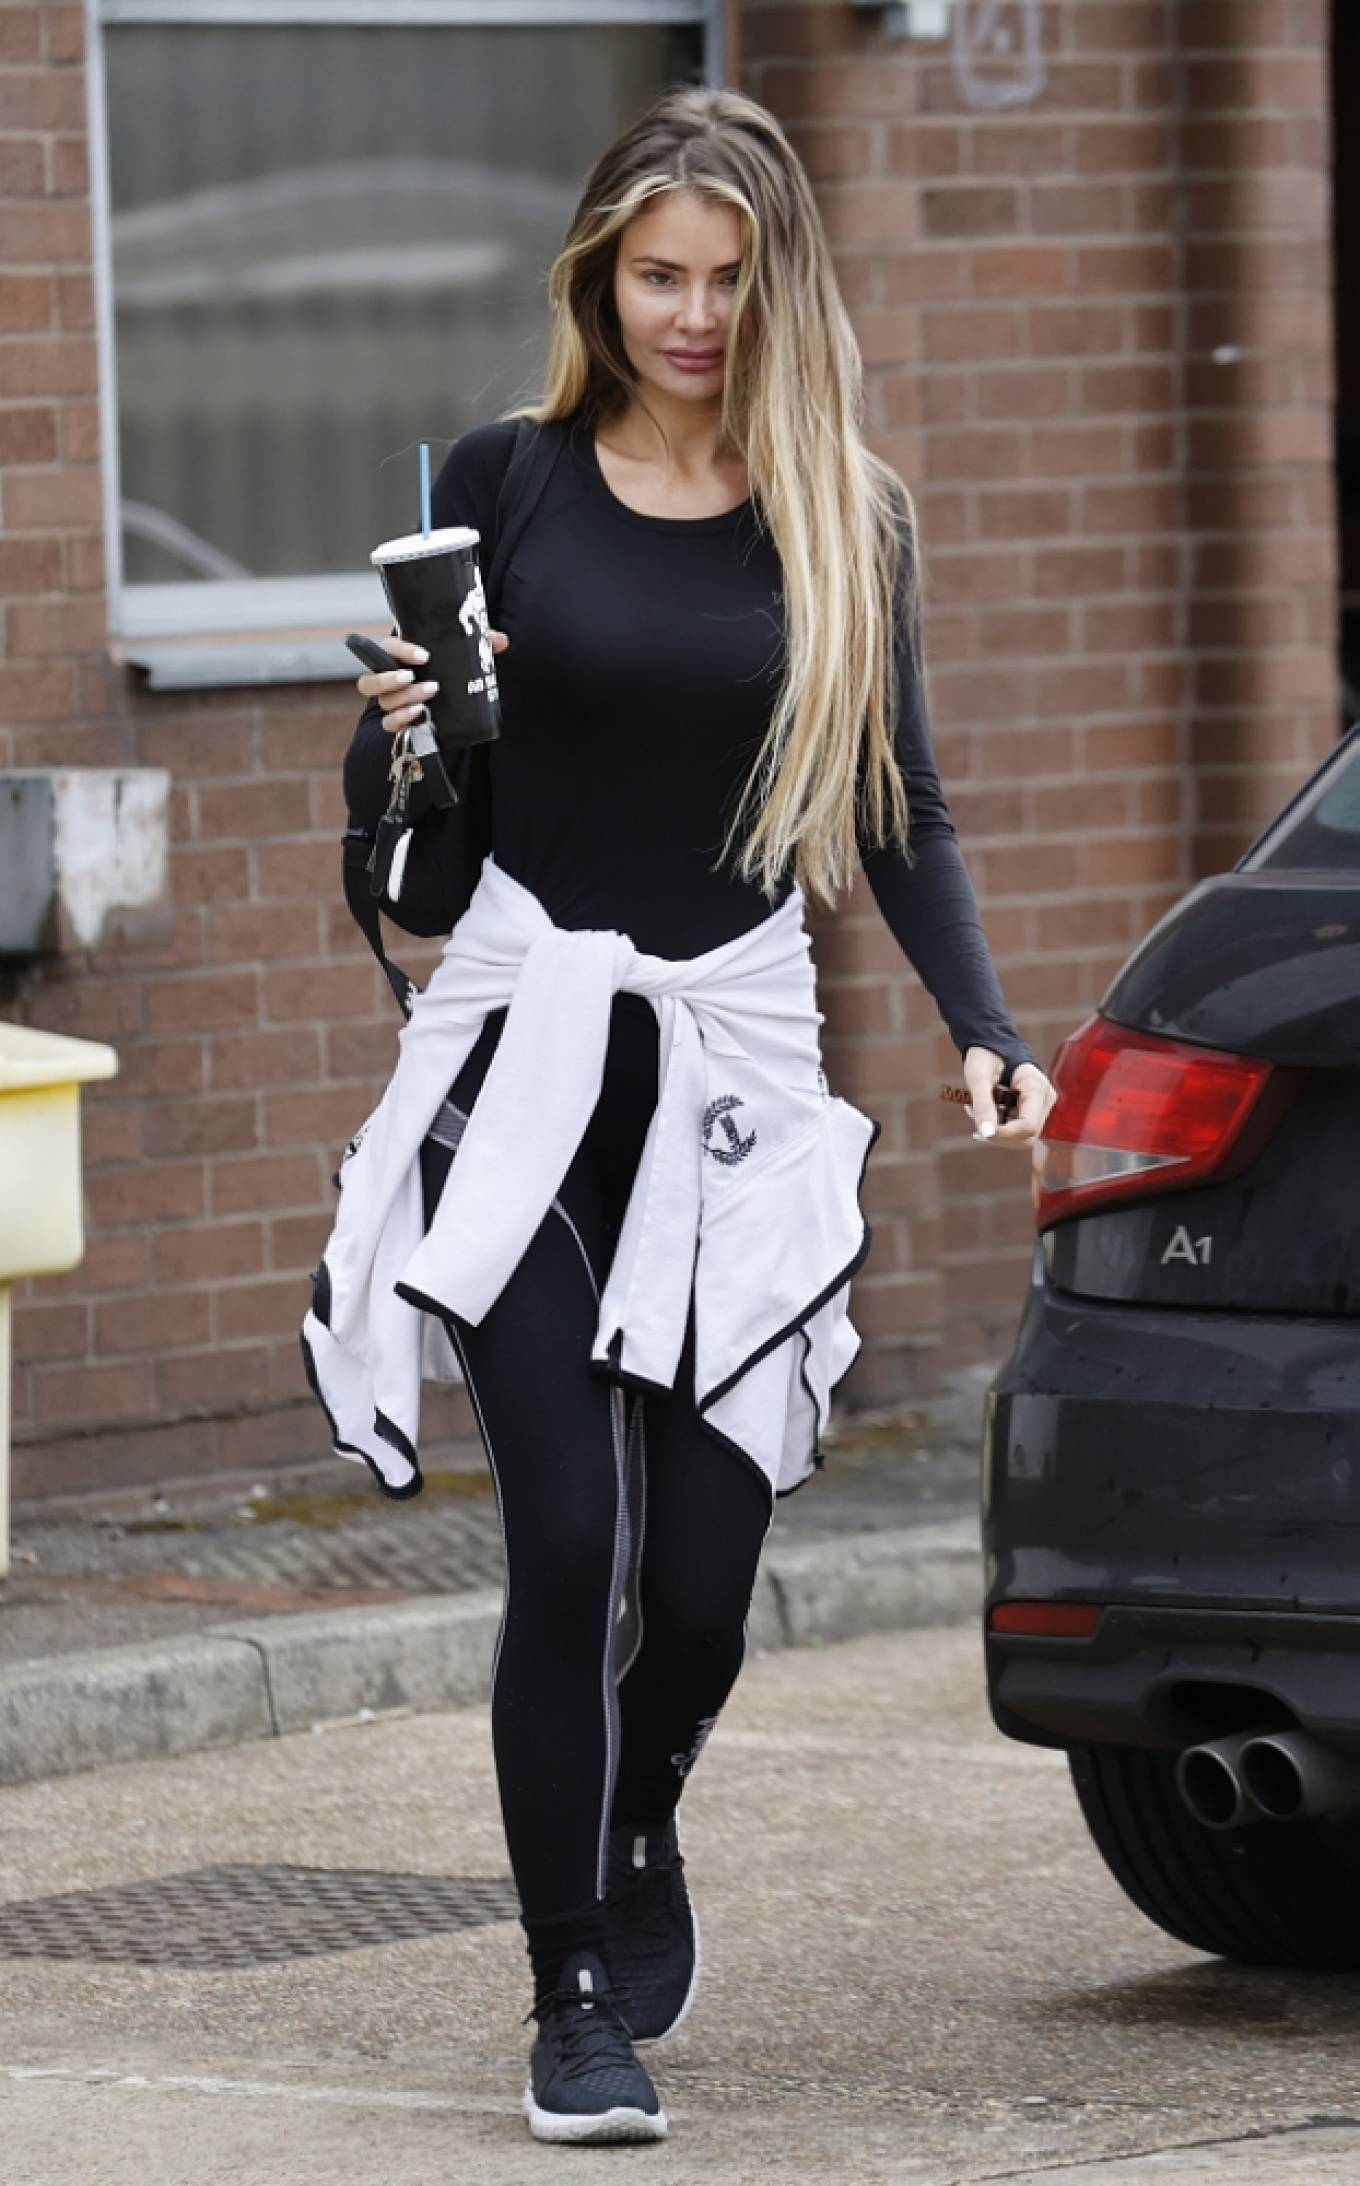 Chloe Sims 2021 : Chloe Sims – Seen make up free after a workout in Essex-09